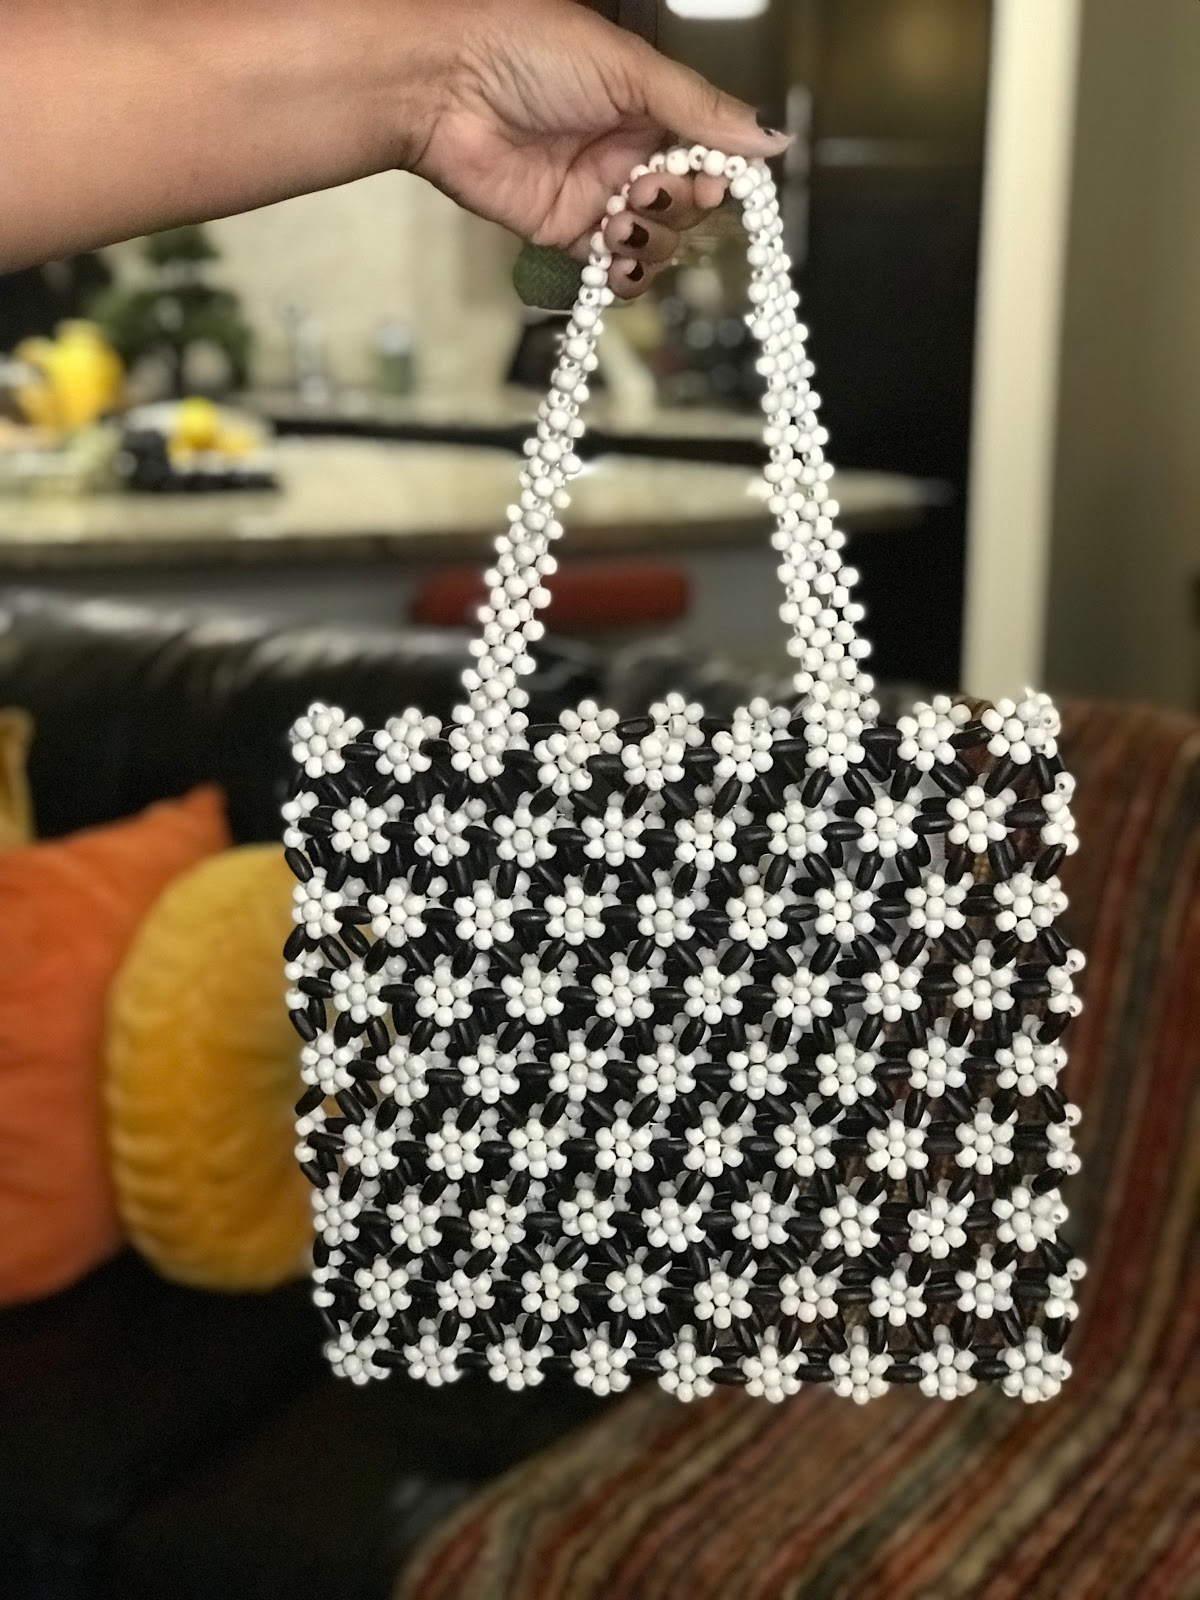 Image:Soetimes I shop  Breaded Floral Handbag Beaded from Urban Outfitters. Bought by Tangie Bell to share on her Outfits